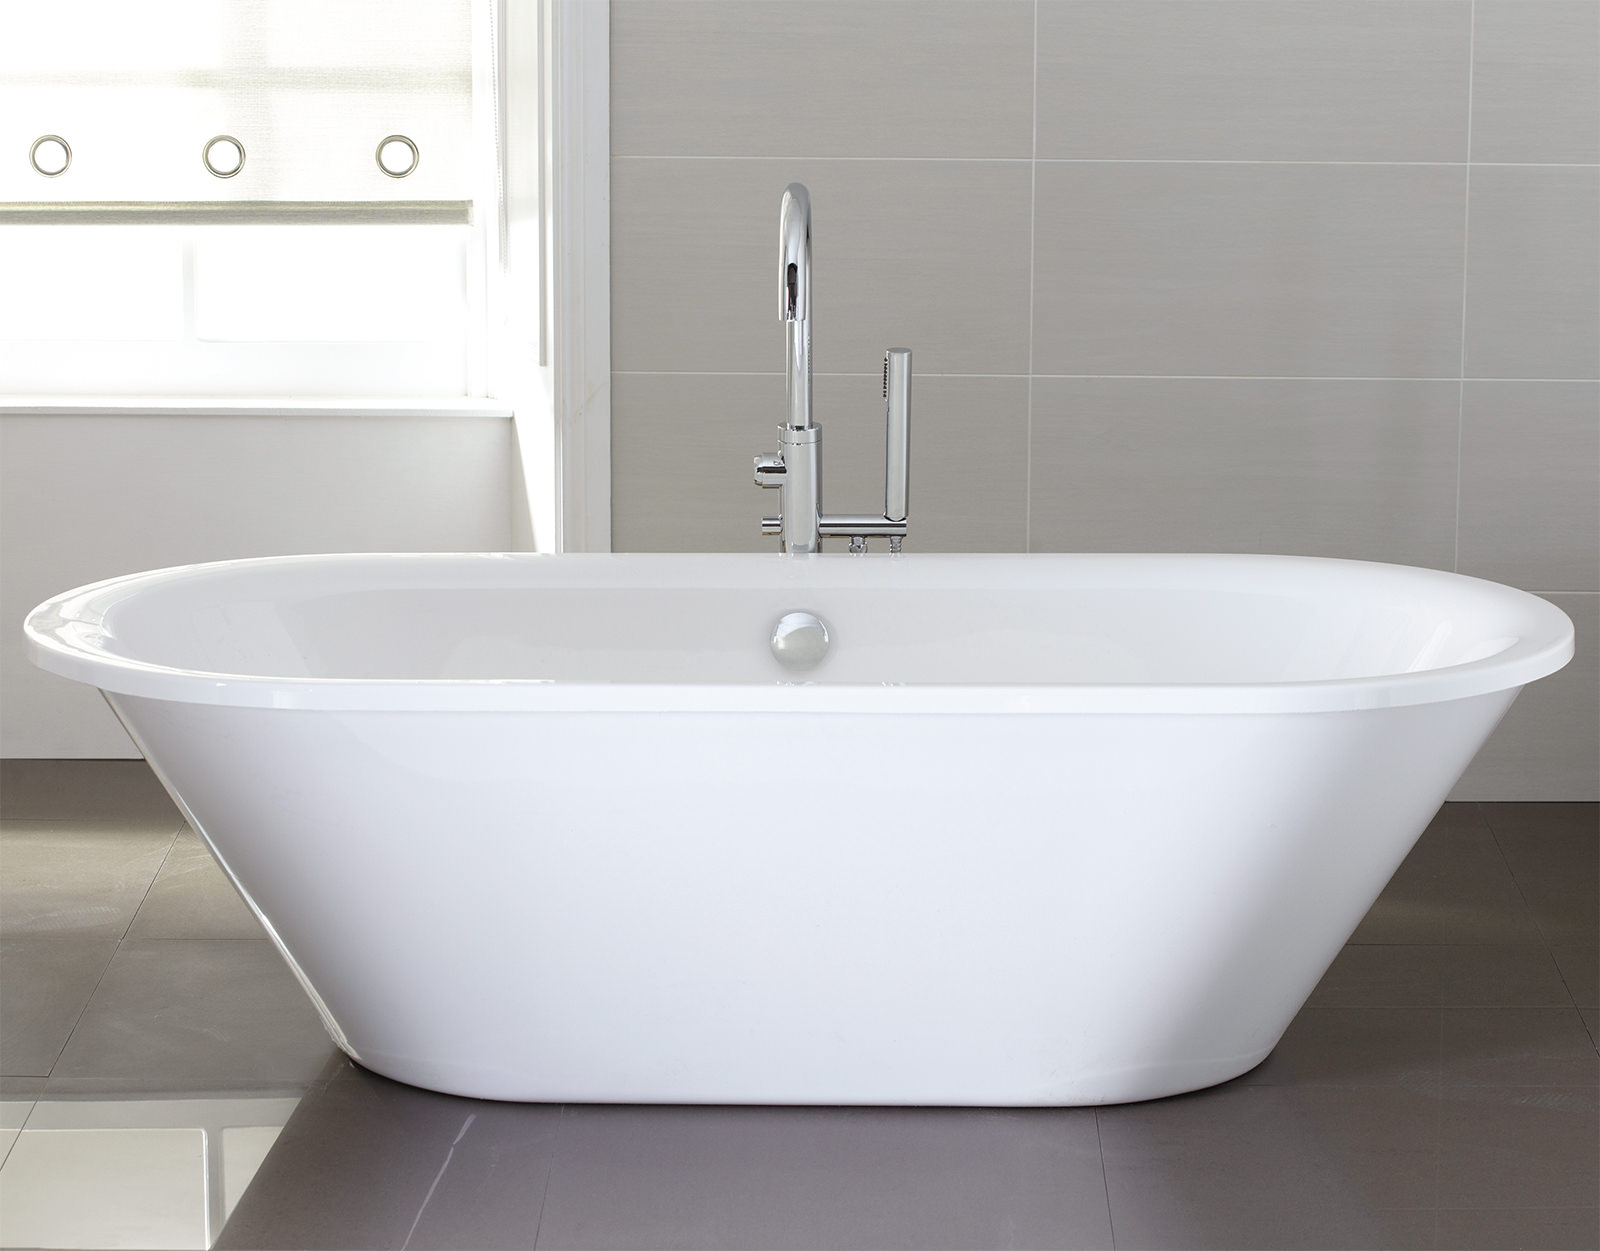 April Haworth 1800 x 800mm Thermolite Skirted Freestanding Bath ...